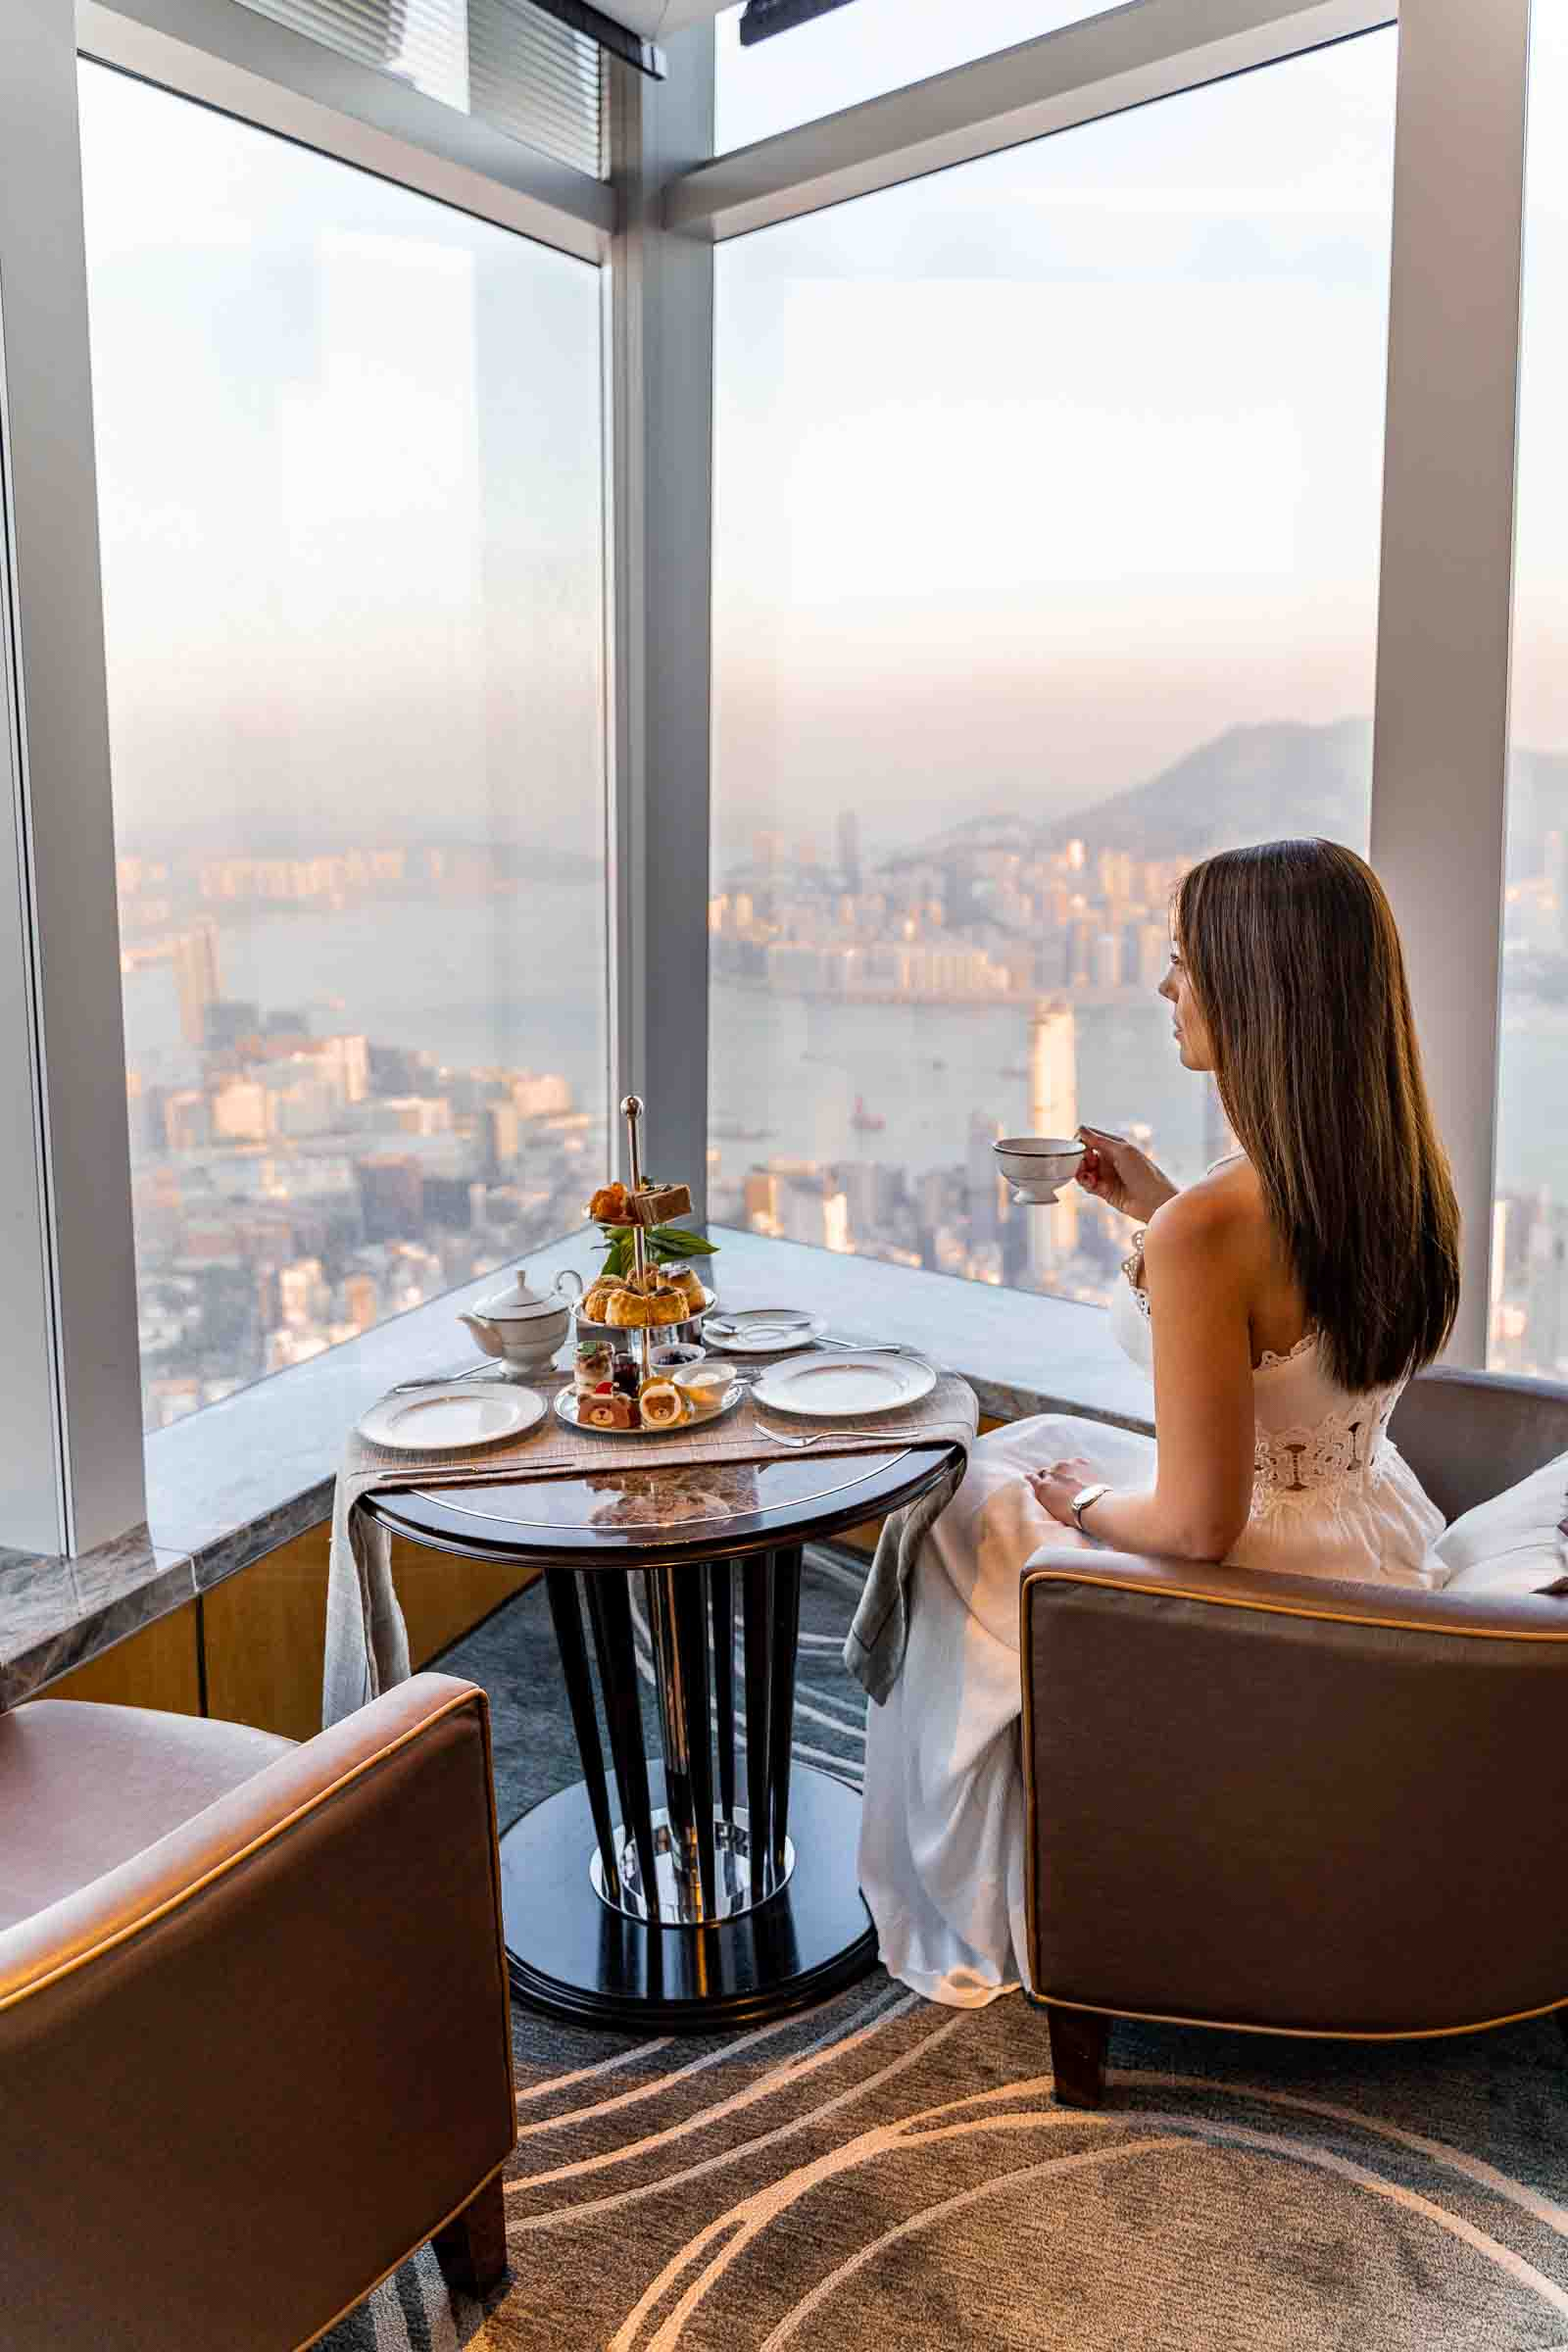 Girl in white dress drinking tea in front of a window with the view of the Hong Kong skyline